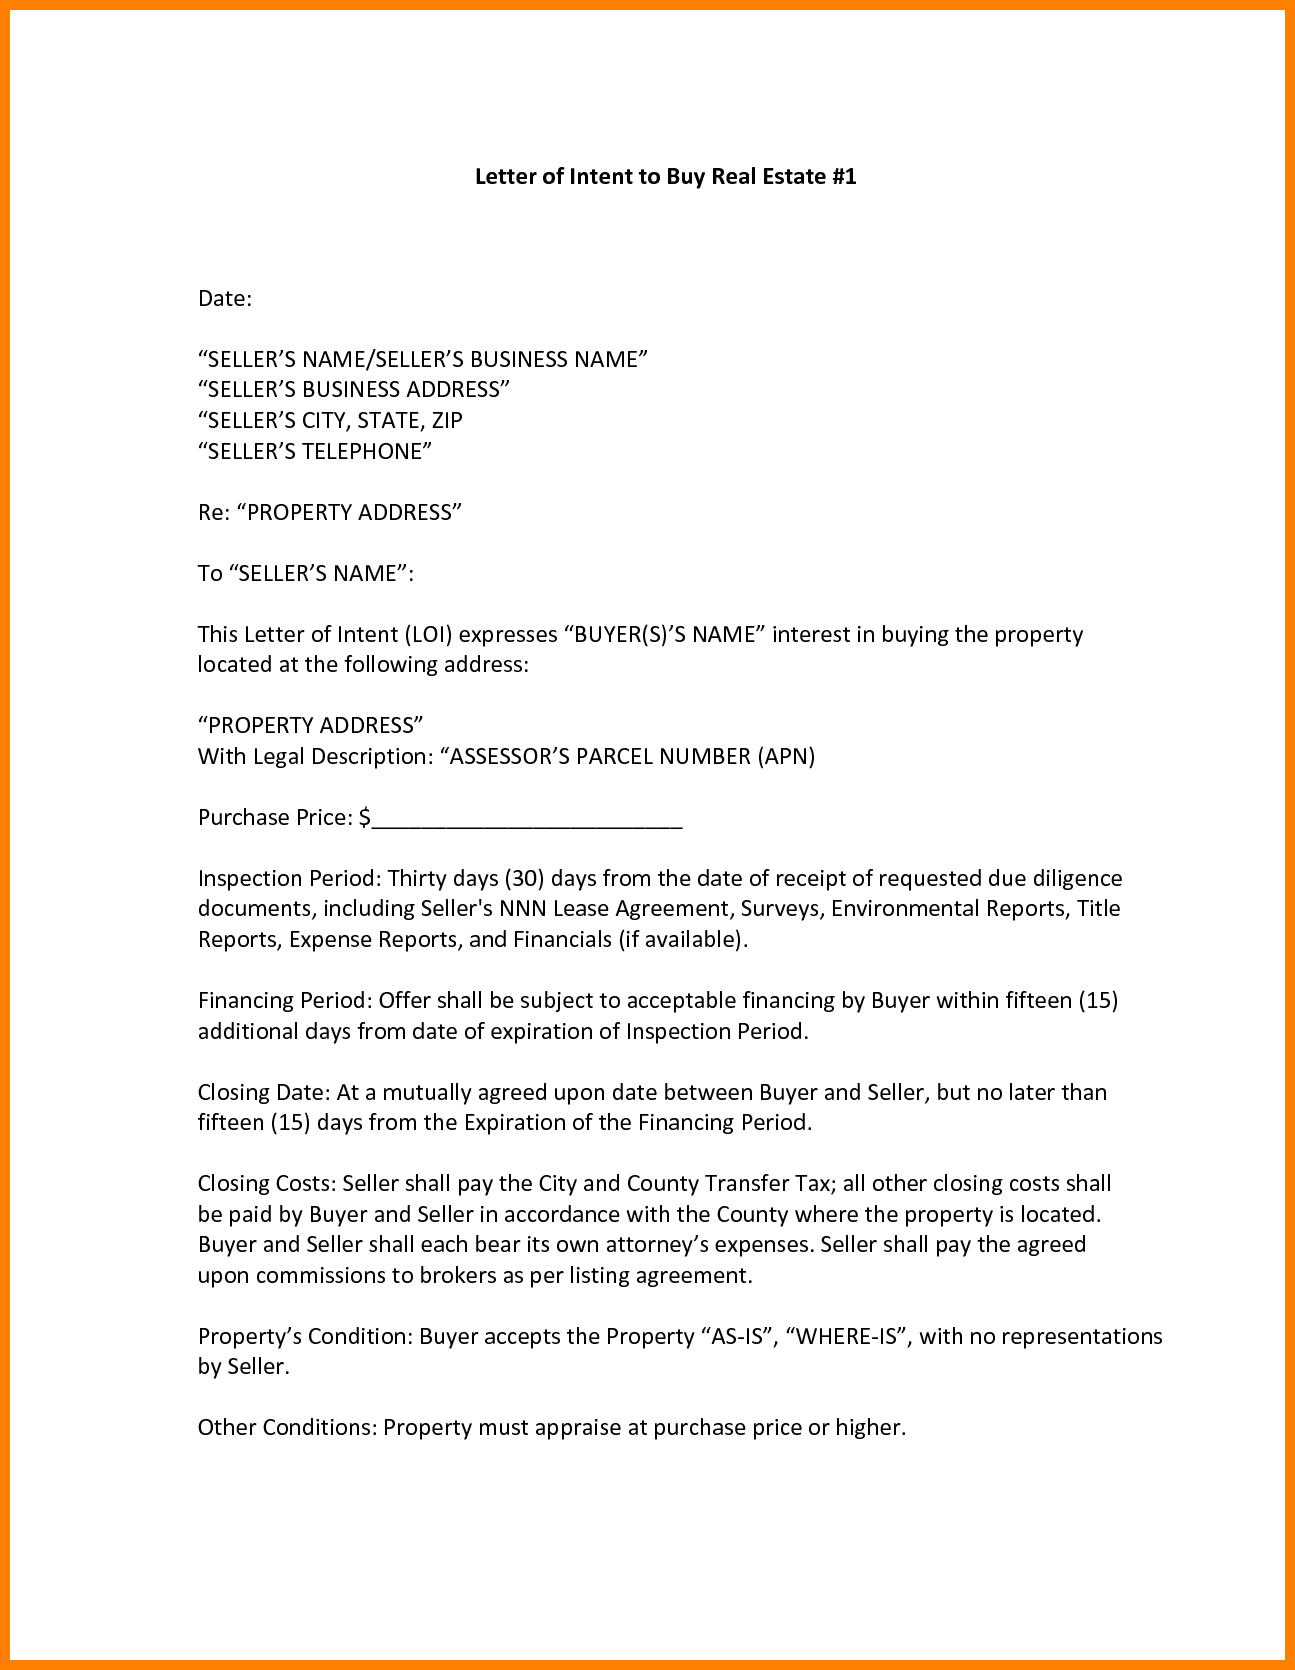 Real Estate Letter Of Intent Template Free - Letter Intent to Buy Property Samplechase Real Estate Template